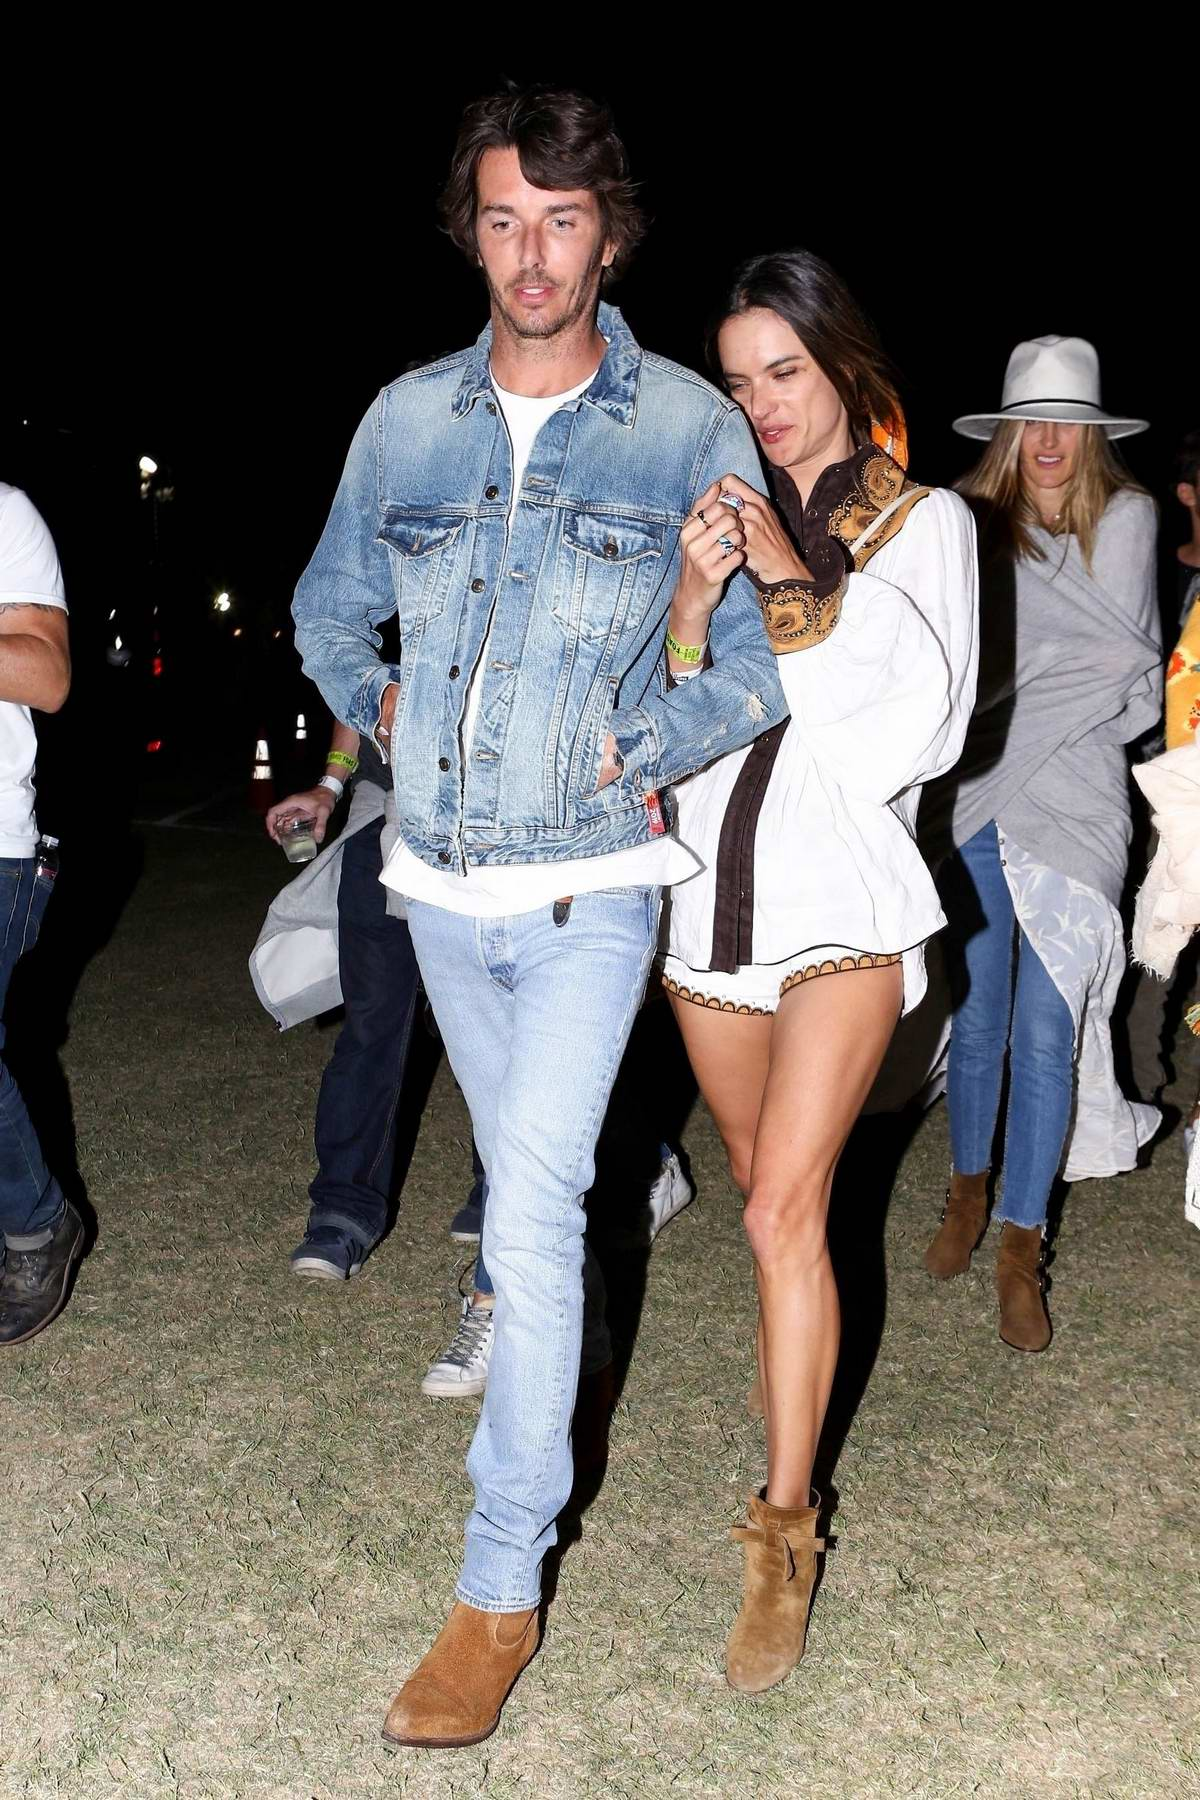 Alessandra Ambrosio holds on tight to Nicolo Oddi while out during Coachella in Indio, California